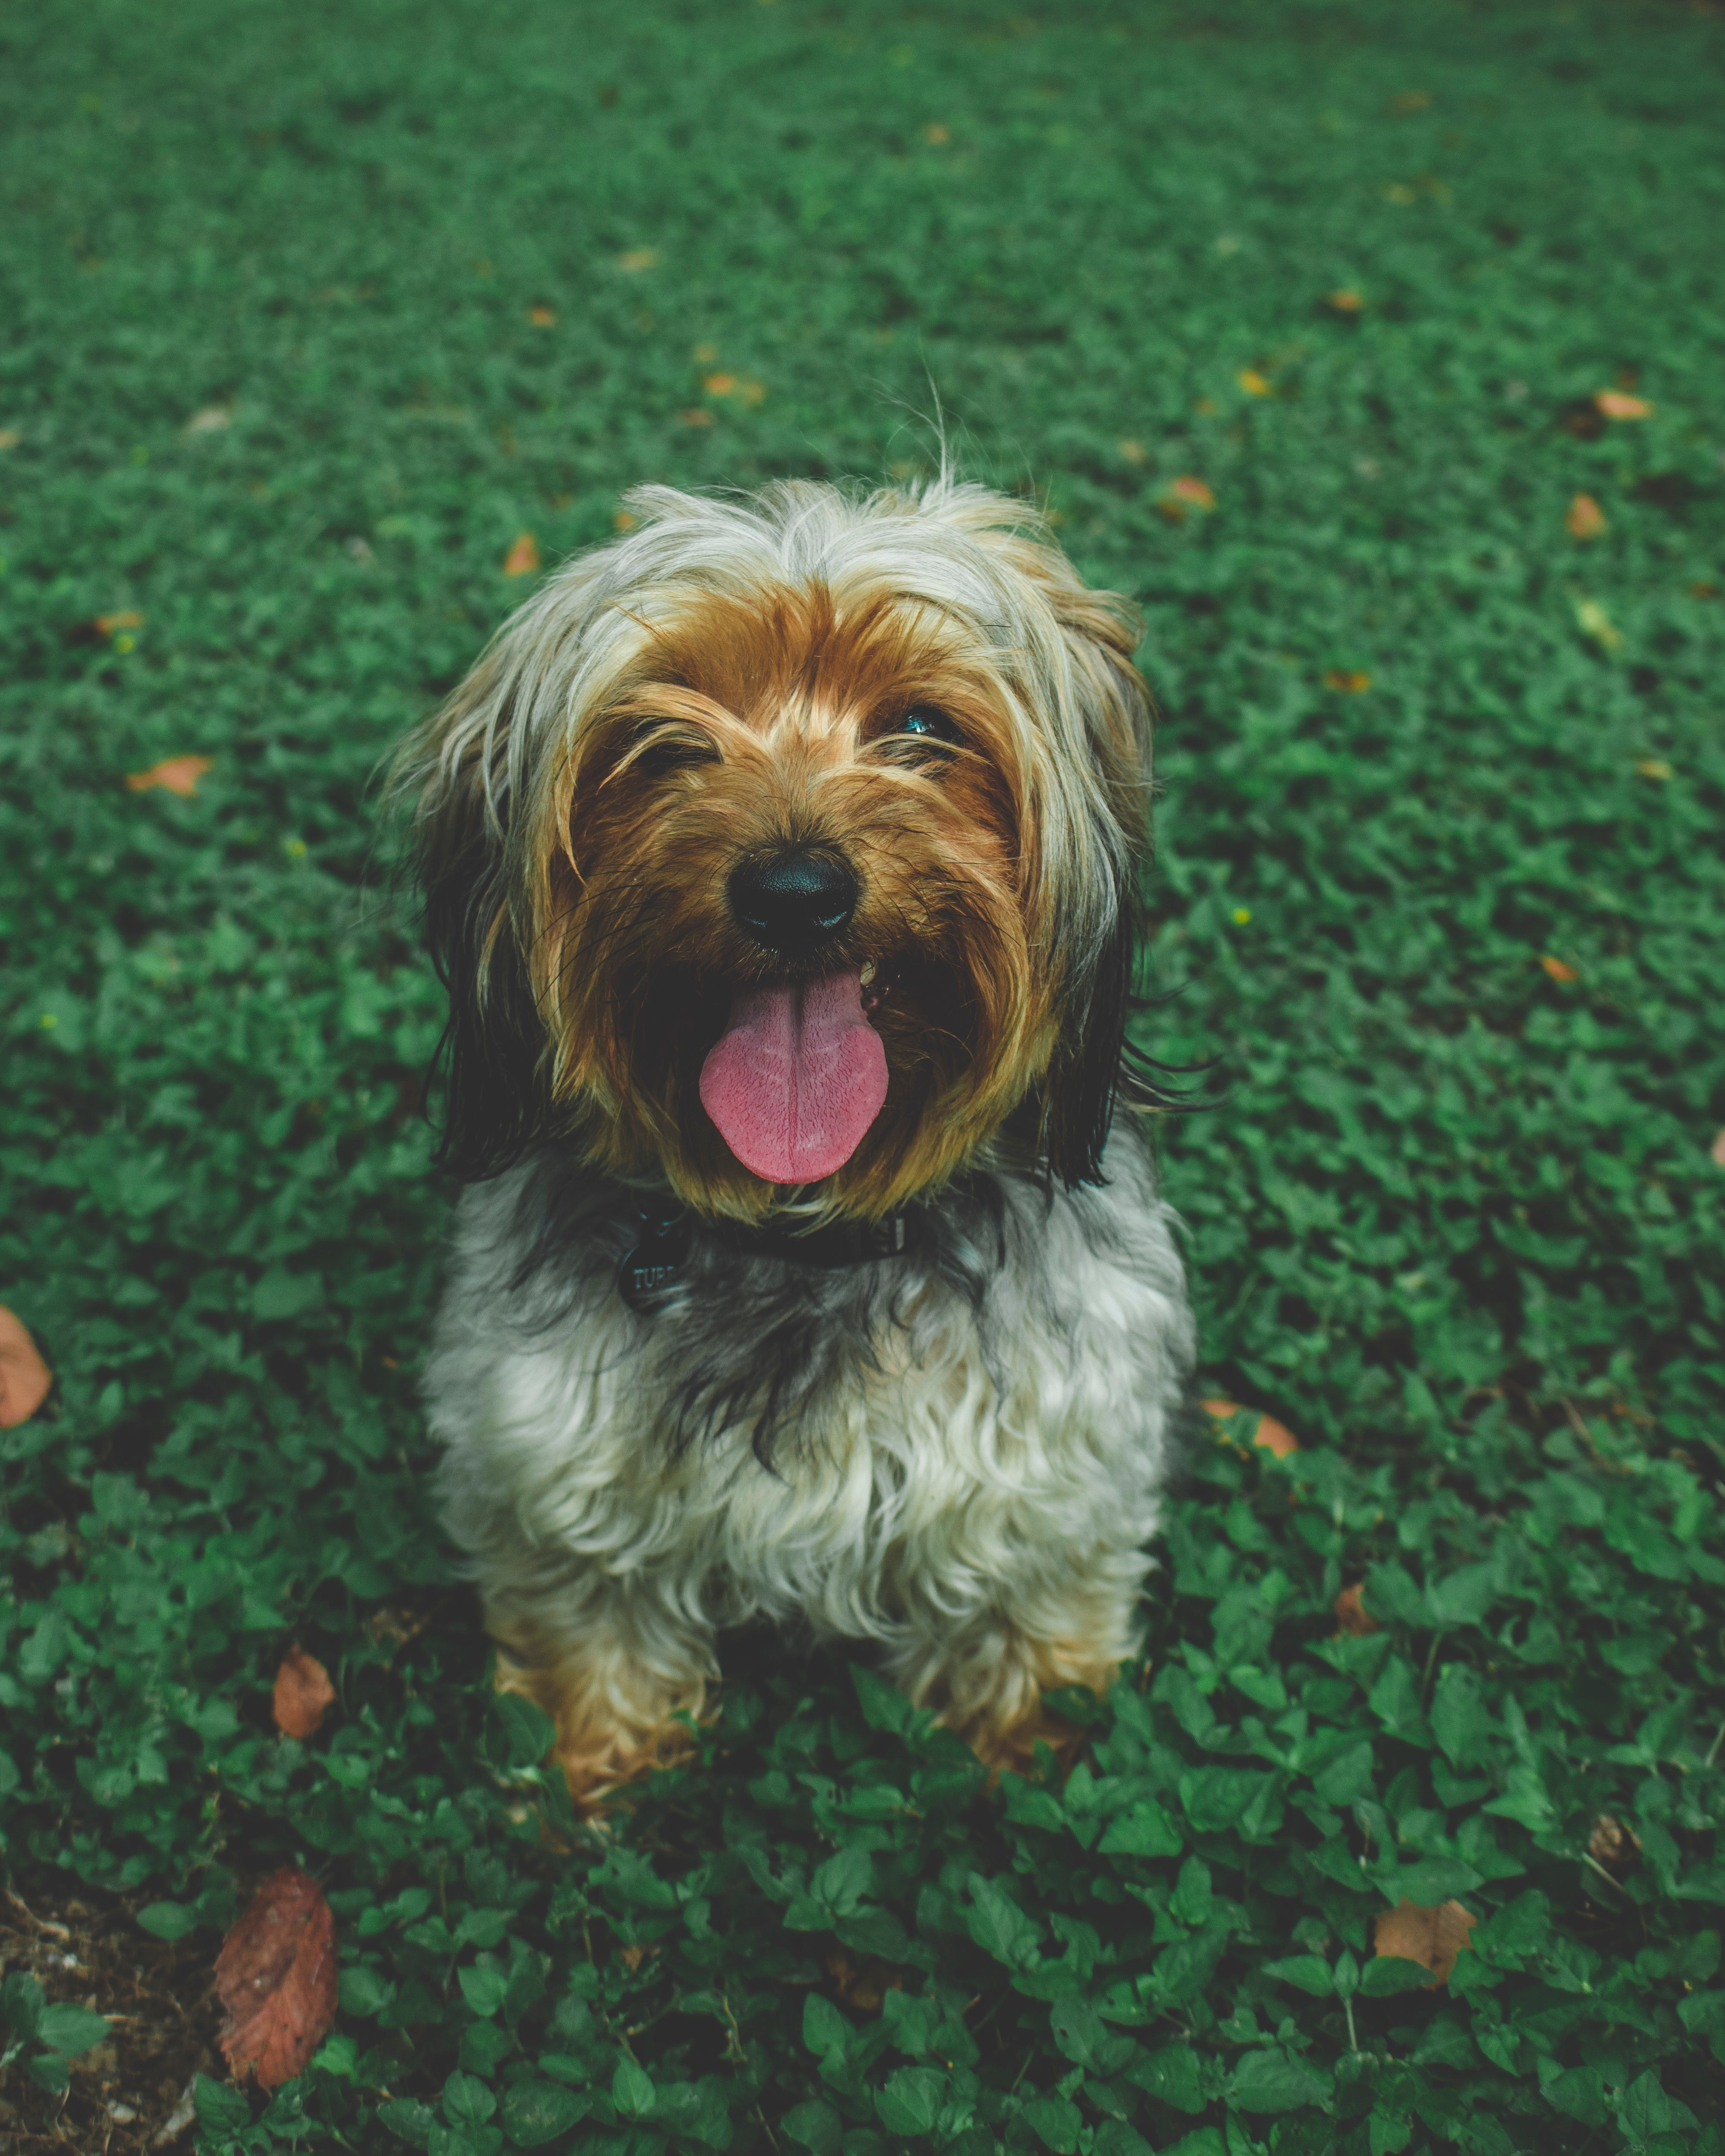 147335 download wallpaper Animals, Chinese Imperial Dog, Dog, Muzzle, Protruding Tongue, Tongue Stuck Out screensavers and pictures for free